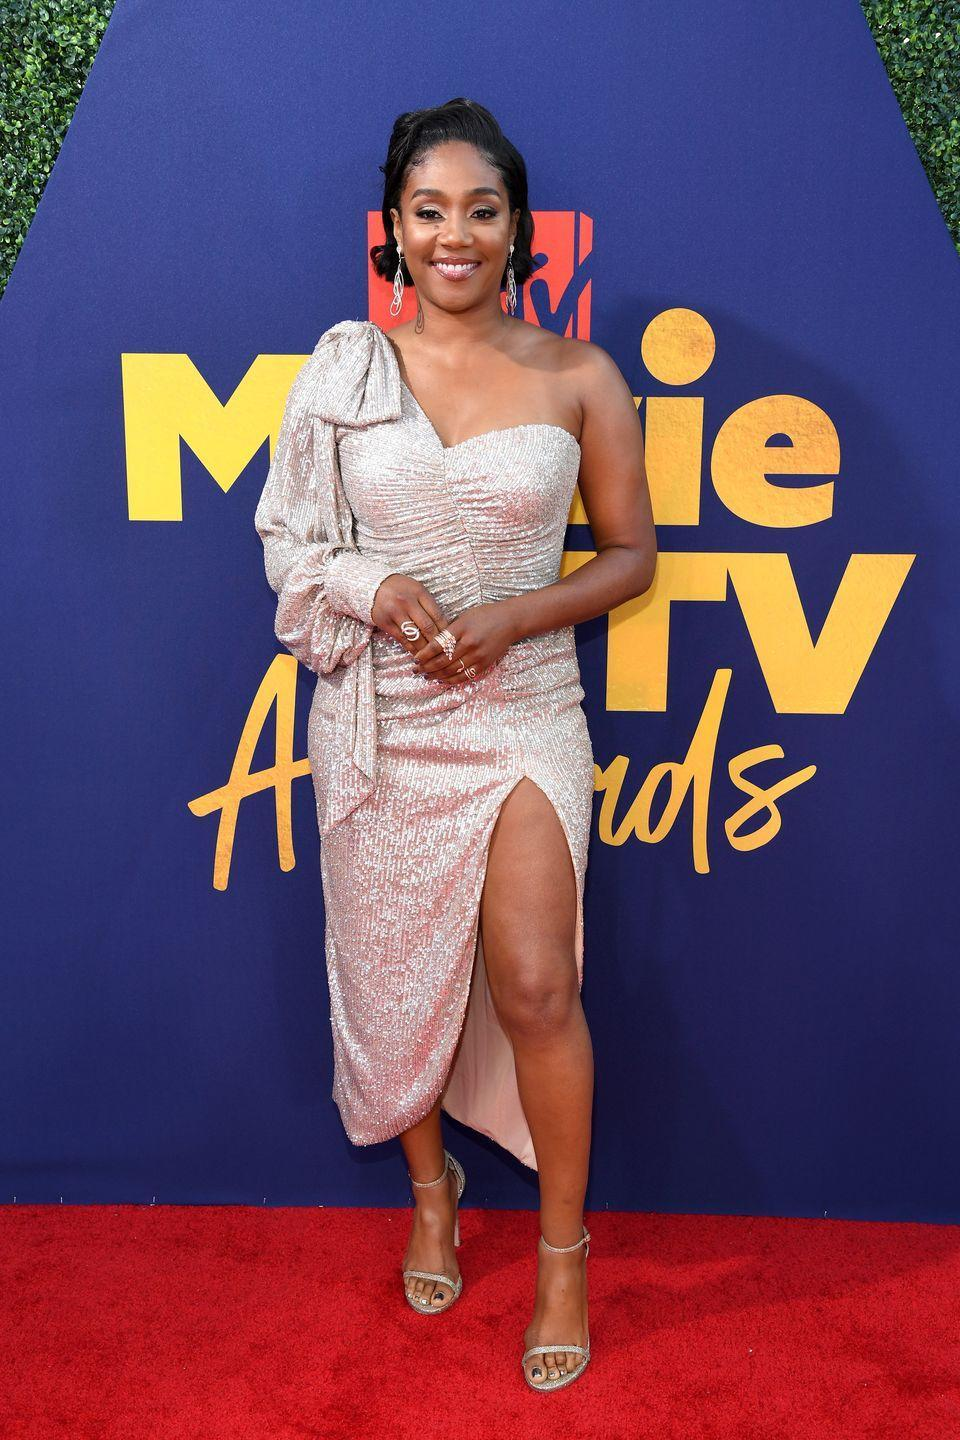 Photo credit: Kevin Mazur/Getty Images for MTV